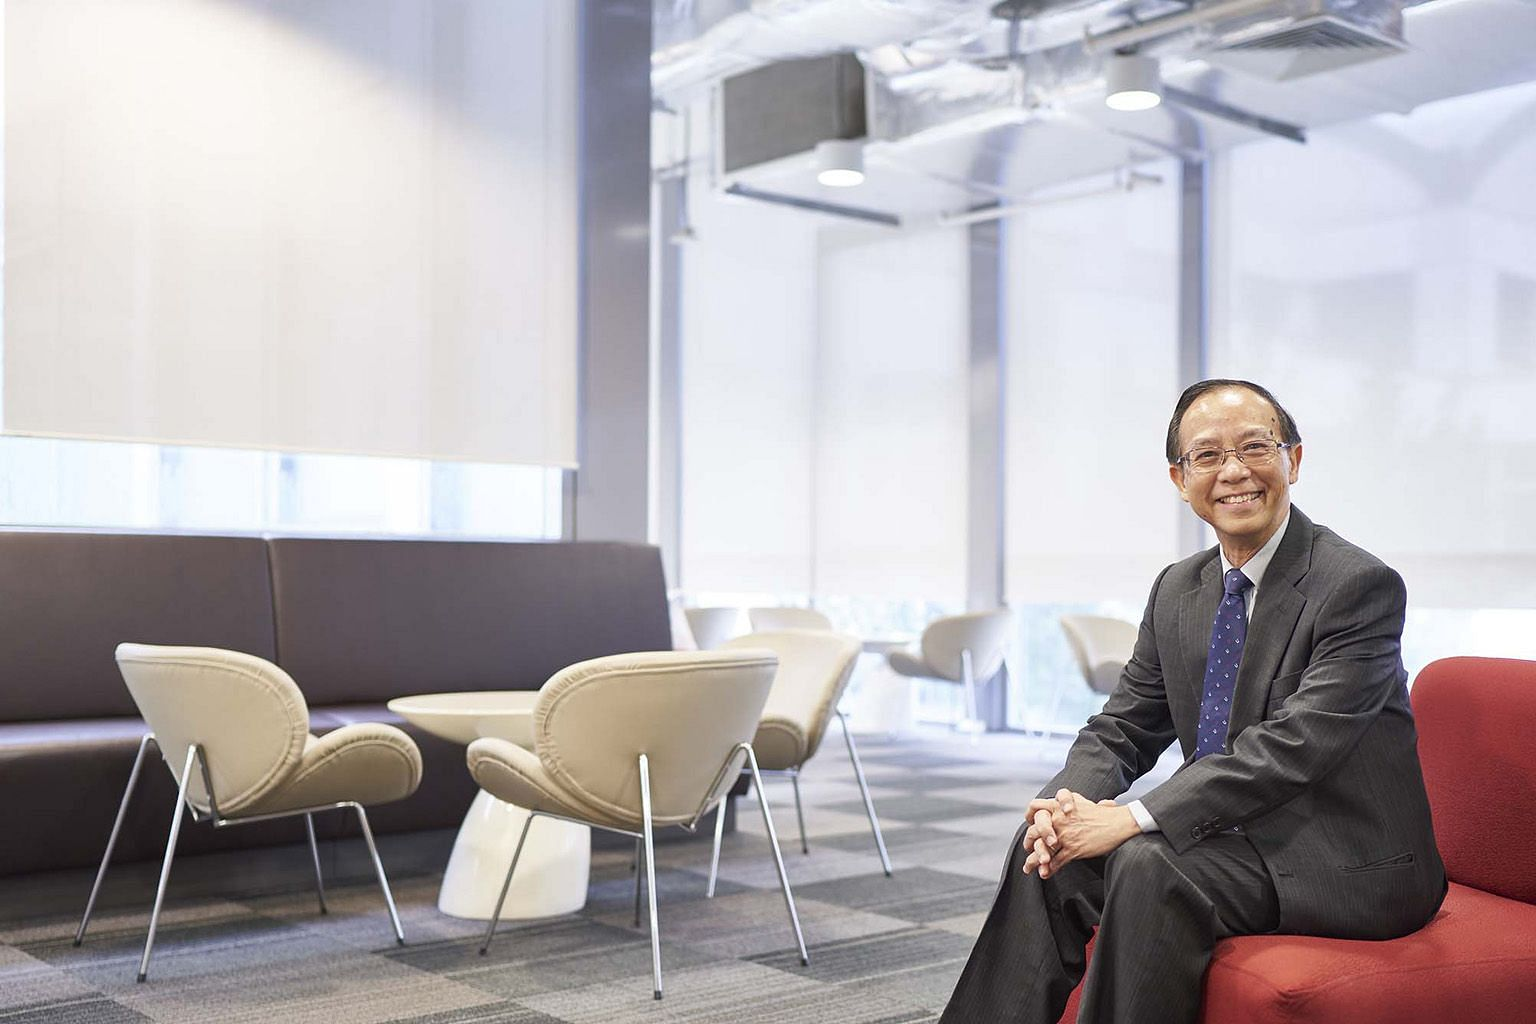 SUSS president Cheong Hee Kiat (above) said the university is in discussions with the Ministry of Education about a new campus, although its location has not been decided. It is now operating on rented premises (right) in Clementi.